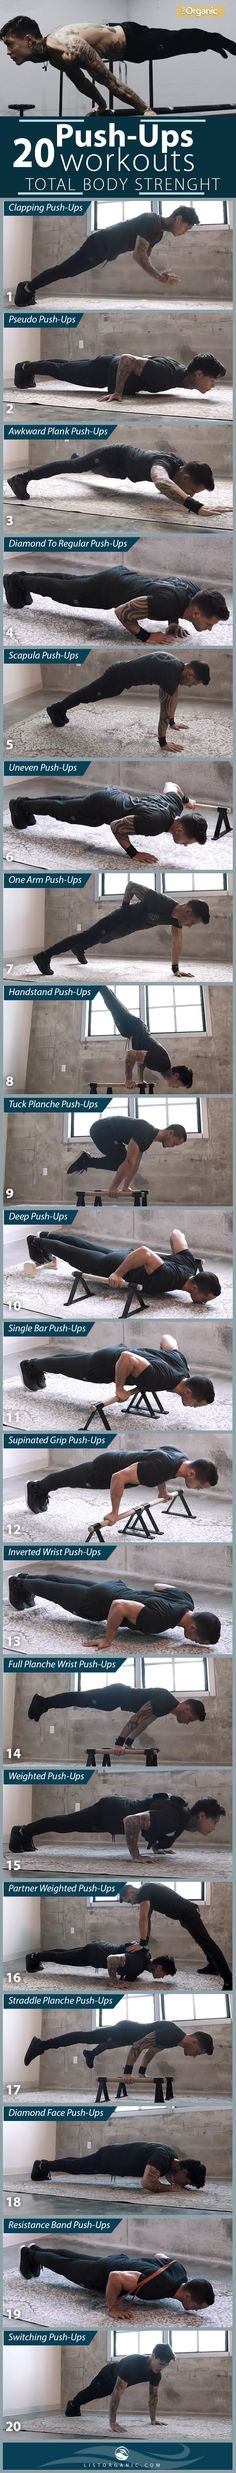 20 PUSH-UP VARIATIONS FOR MAKE TOTAL BODY STRENGTH. #fitness #fitnessmotivation #fitnessmodel #healthy #workout #workoutmotivation #exercisefitnesss #exercise, #healthyactivity, # naturalhealth